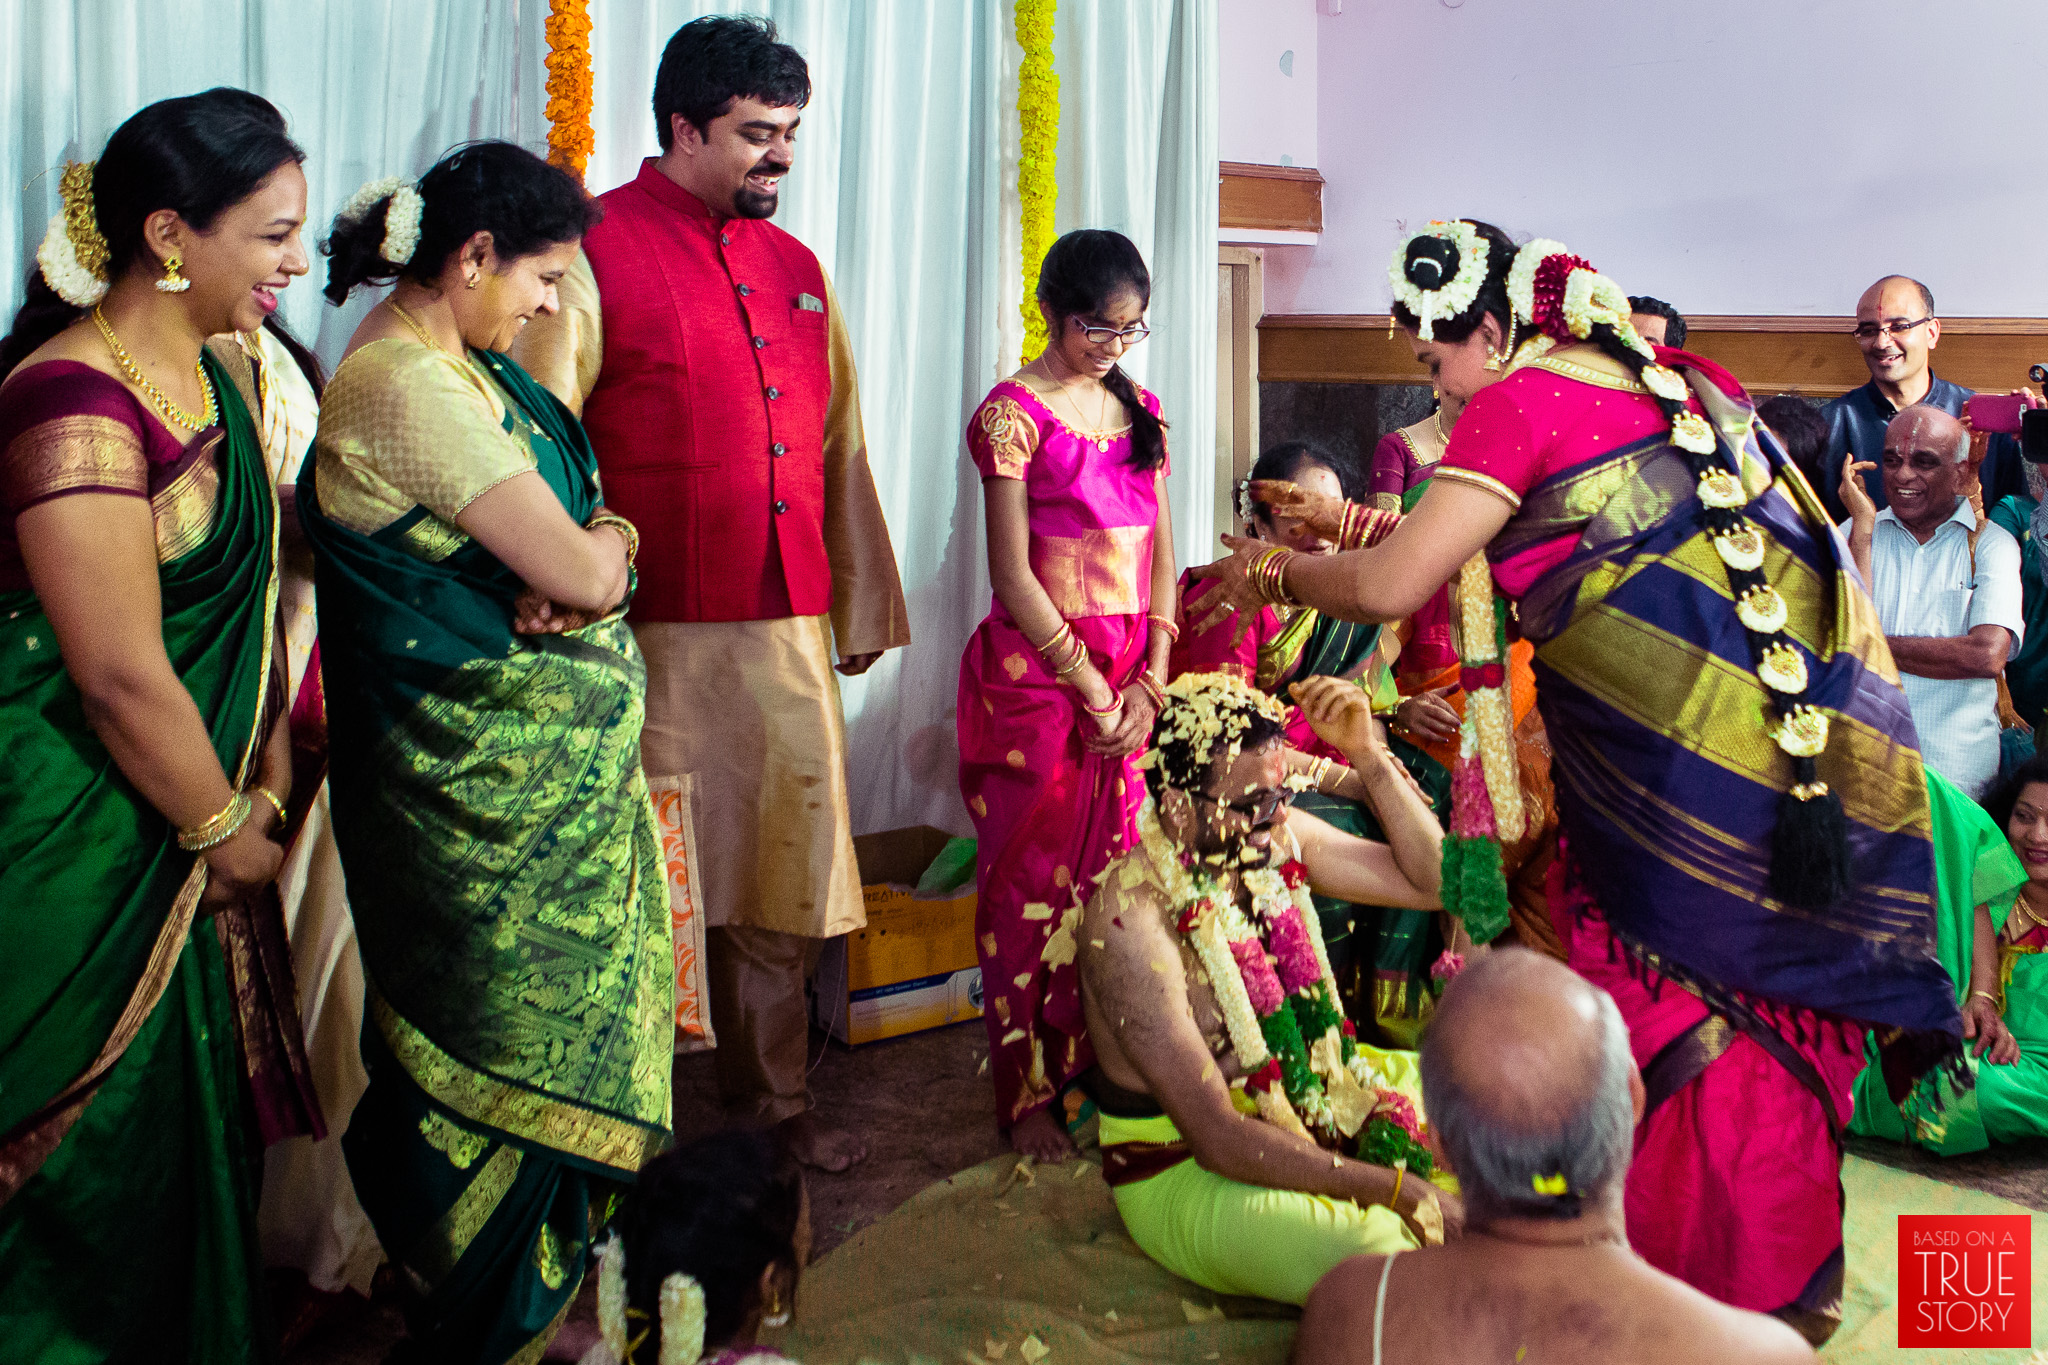 tambrahm-candid-wedding-photographer-bangalore-0062.jpg